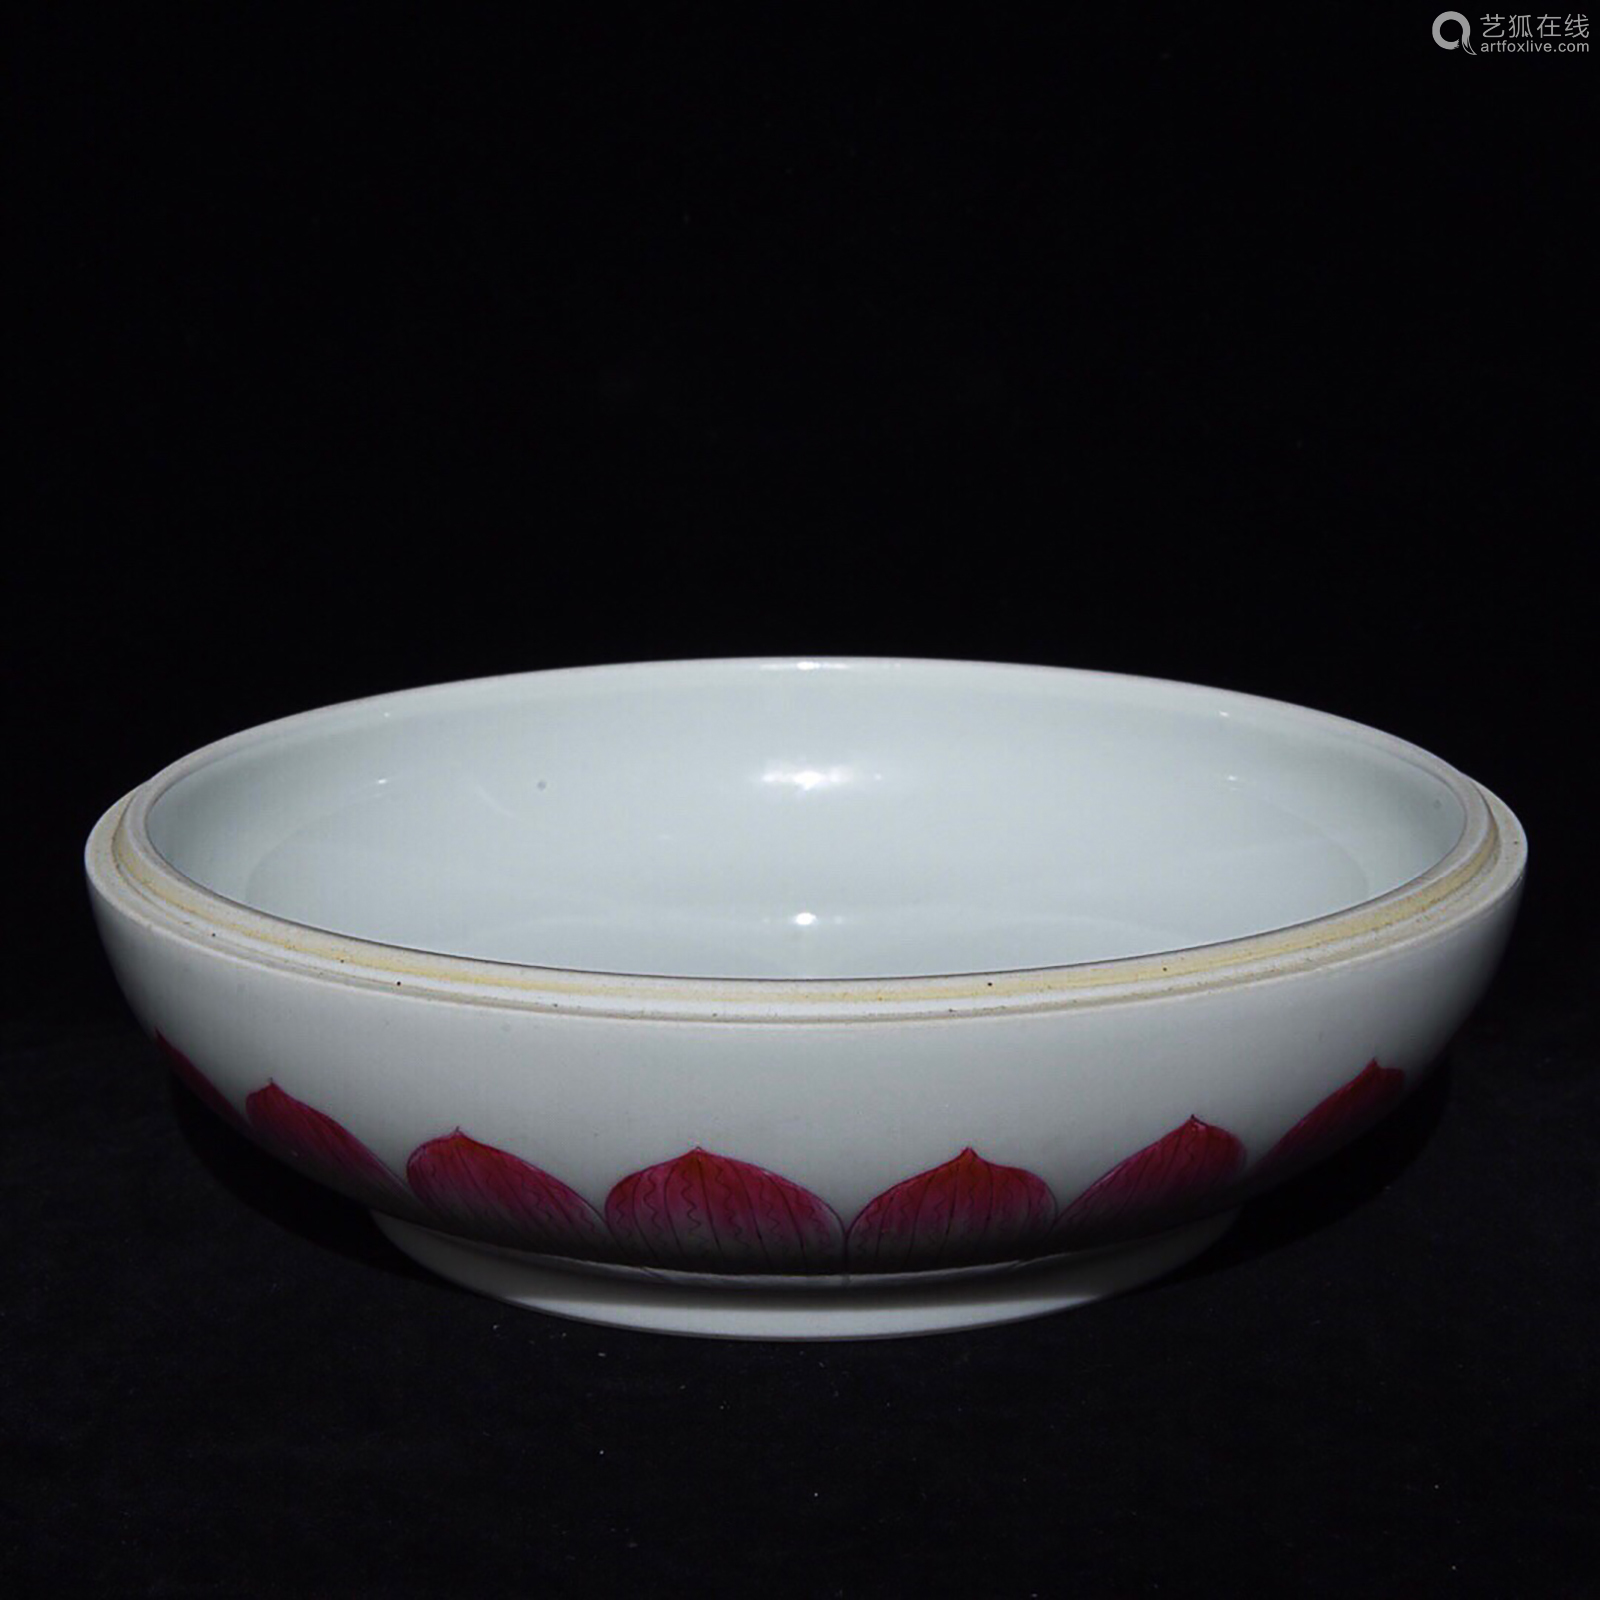 AN OLD PEACH PATTERN FRUIT DISH